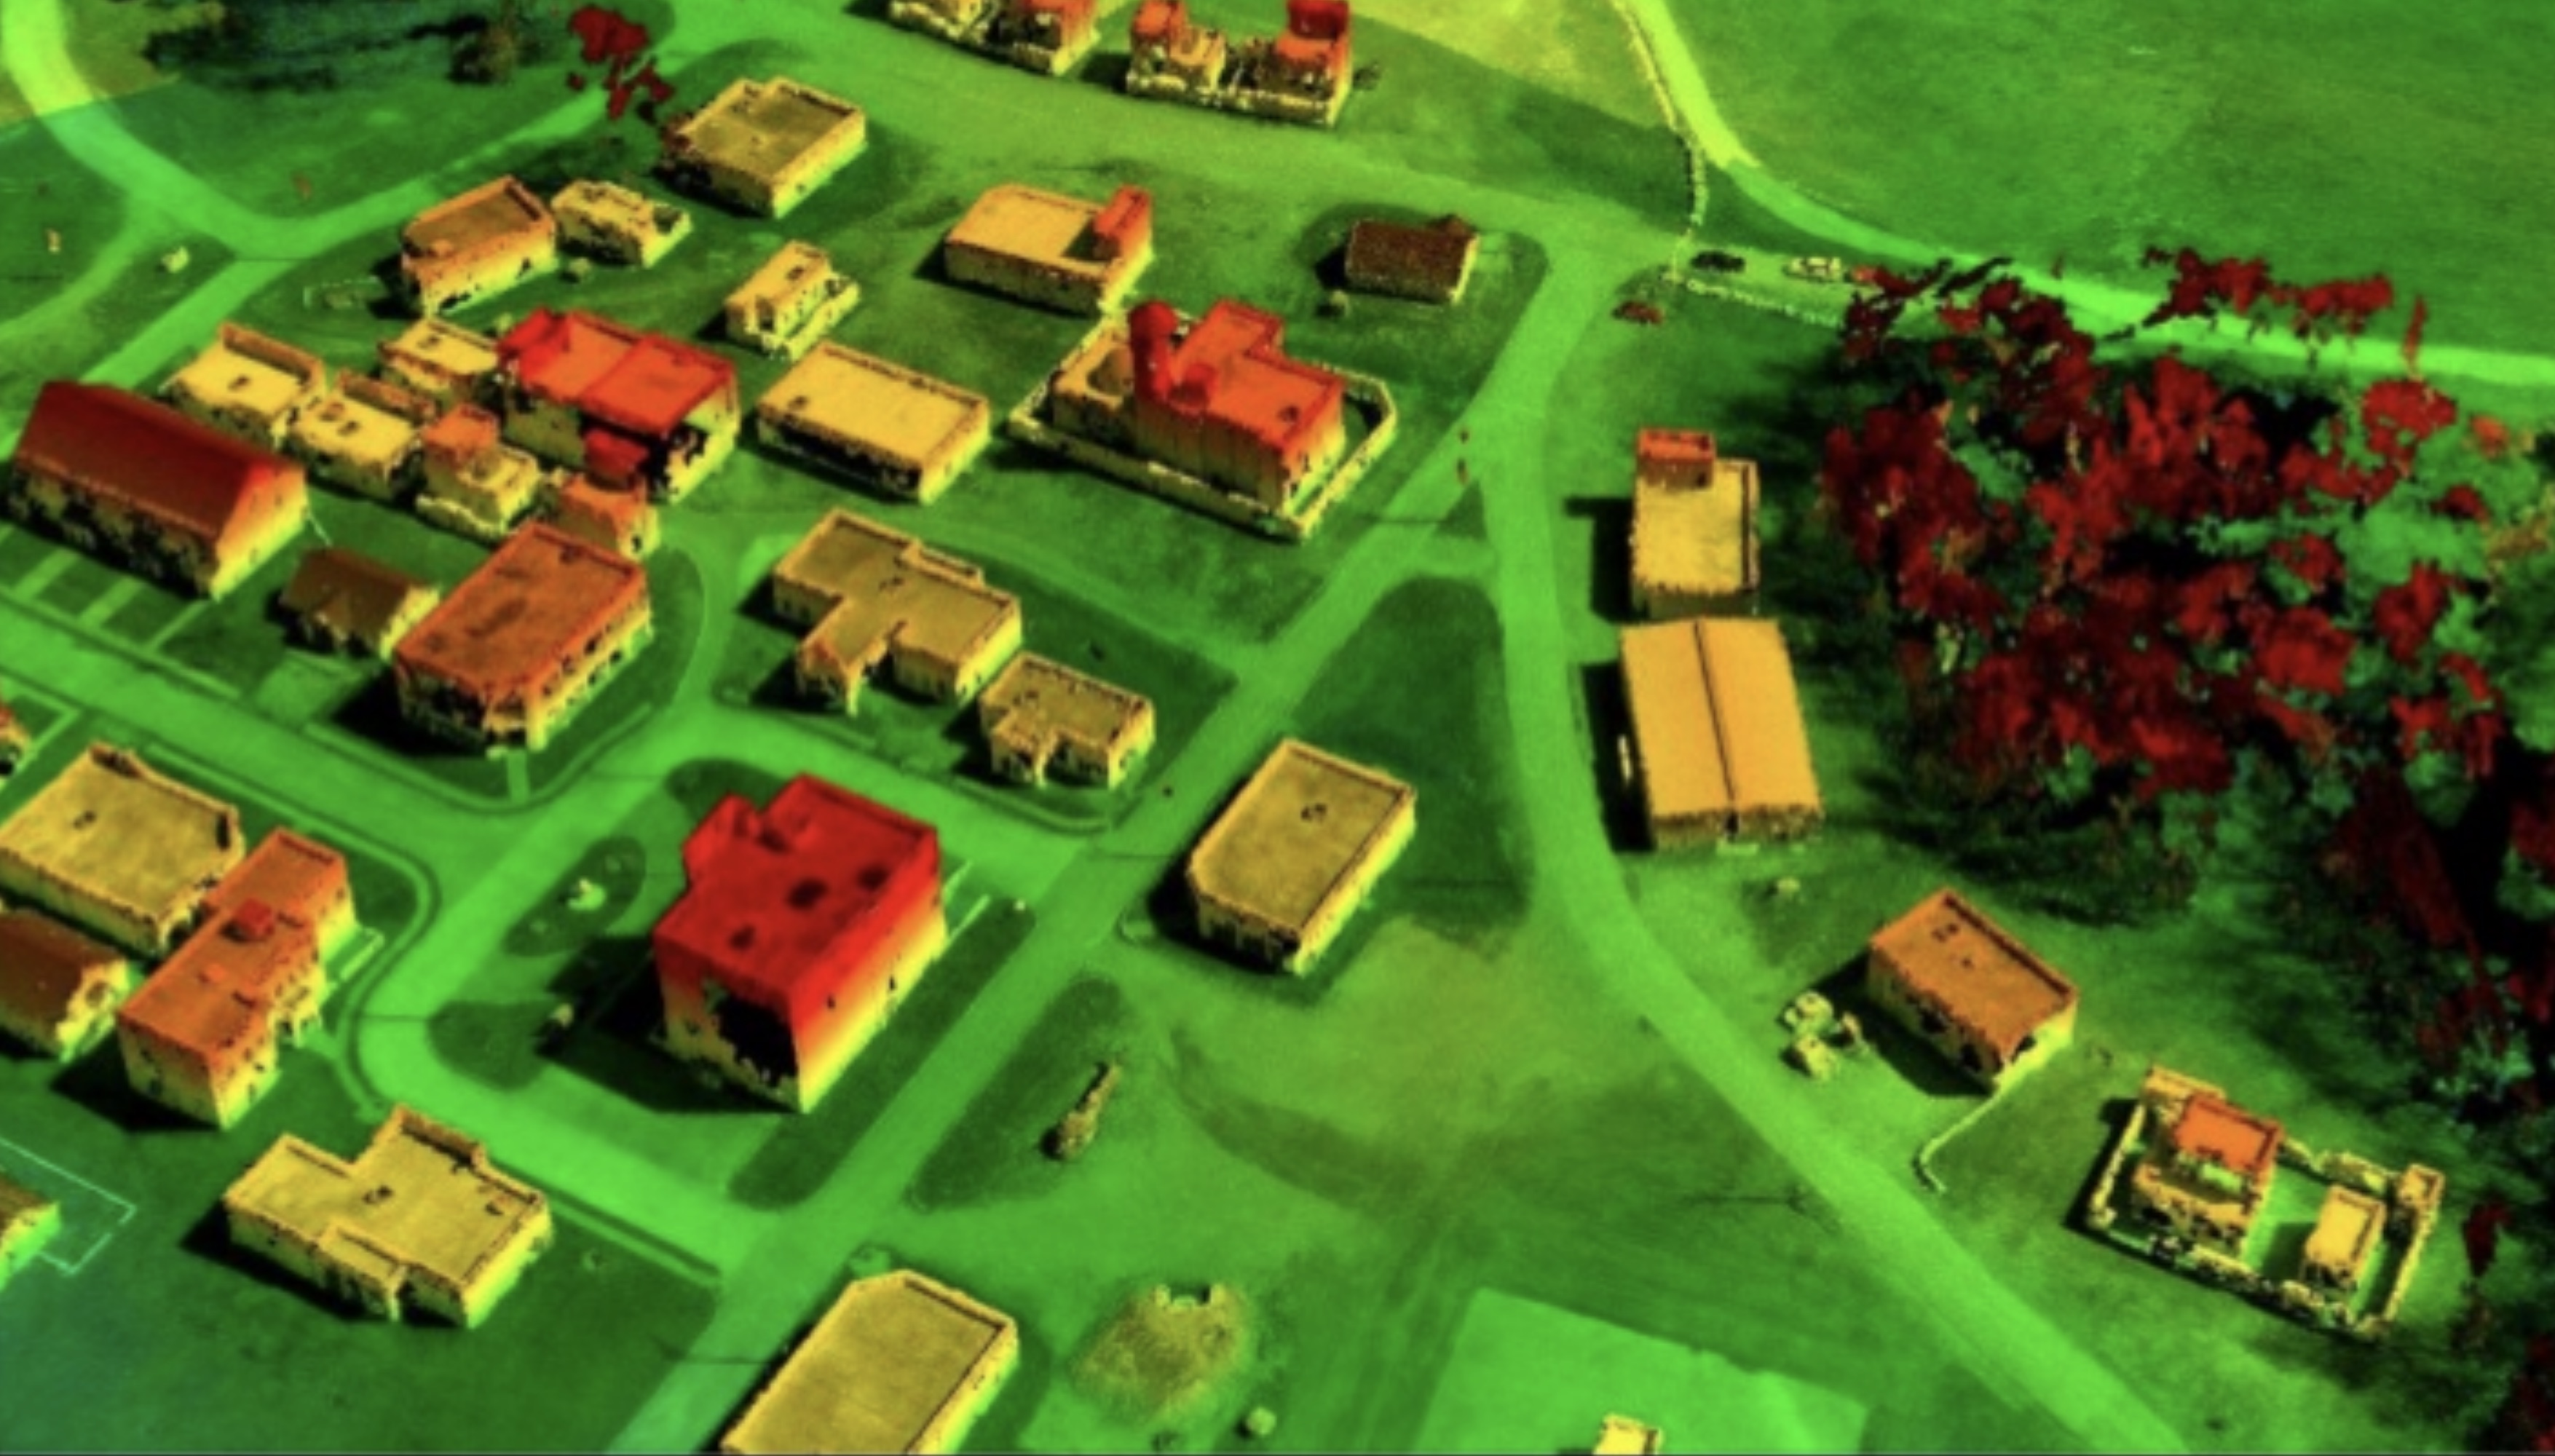 Army photogrammetry technique makes 3D aerial maps in minutes